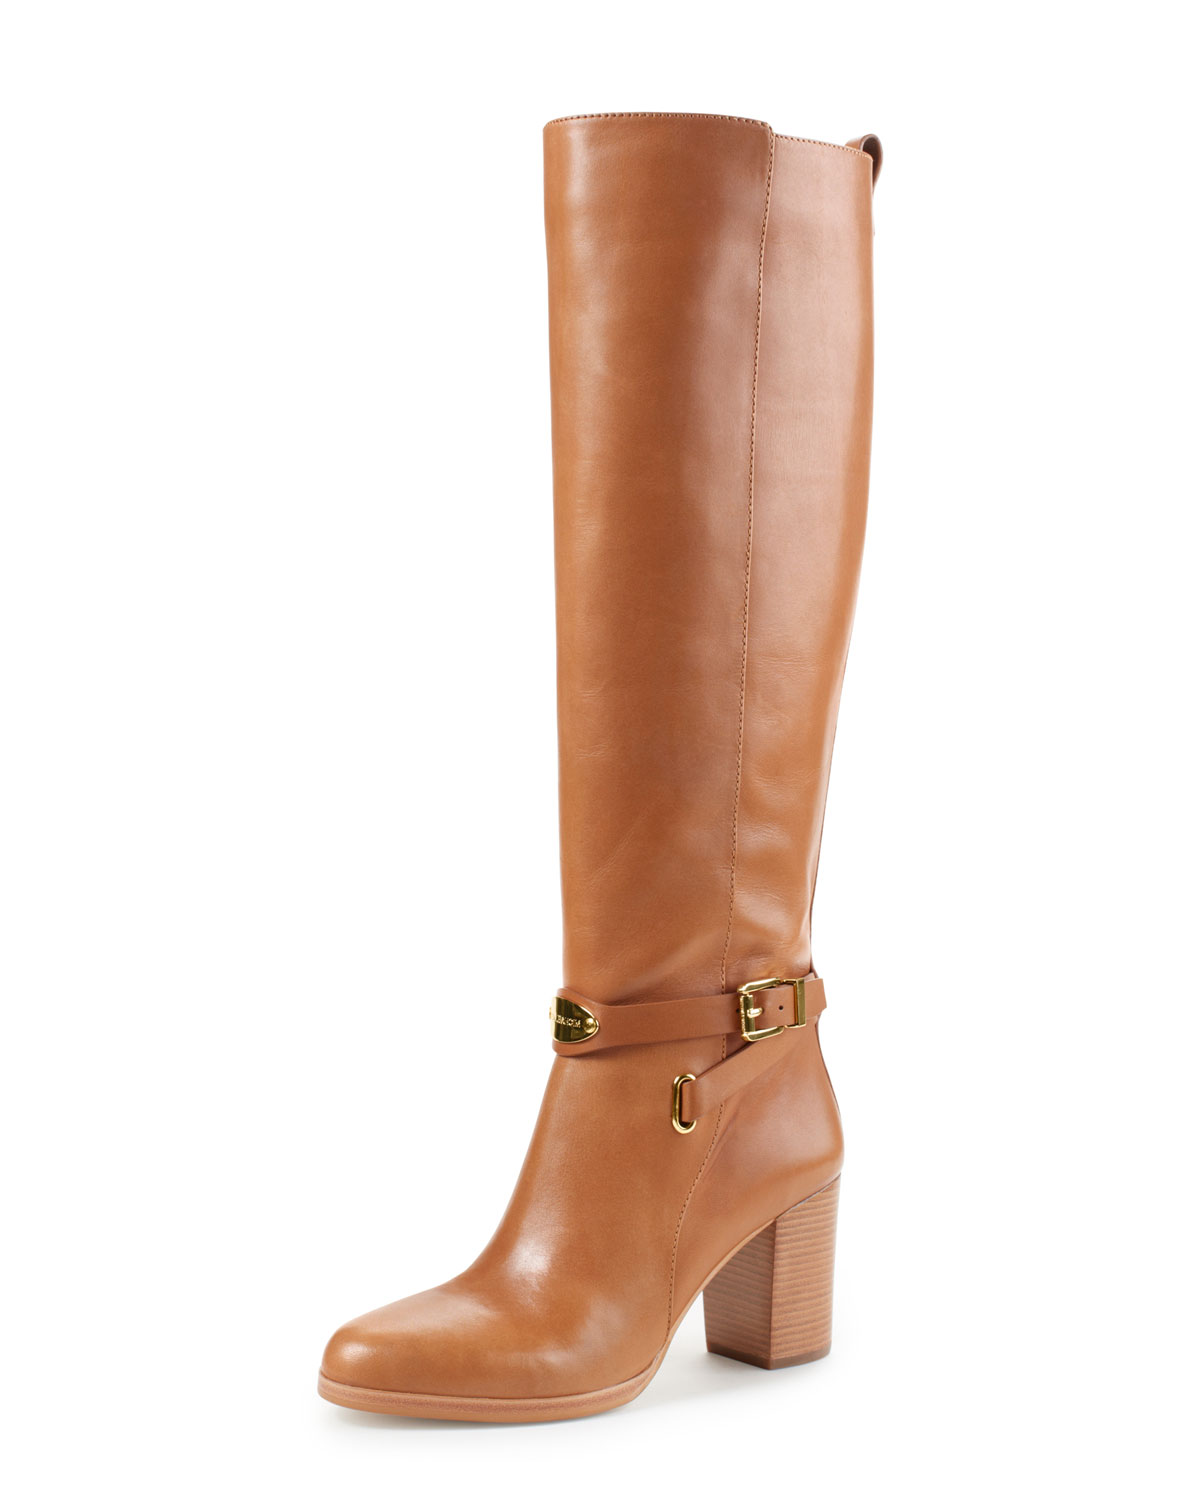 michael michael kors arley riding boot in brown luggage lyst. Black Bedroom Furniture Sets. Home Design Ideas